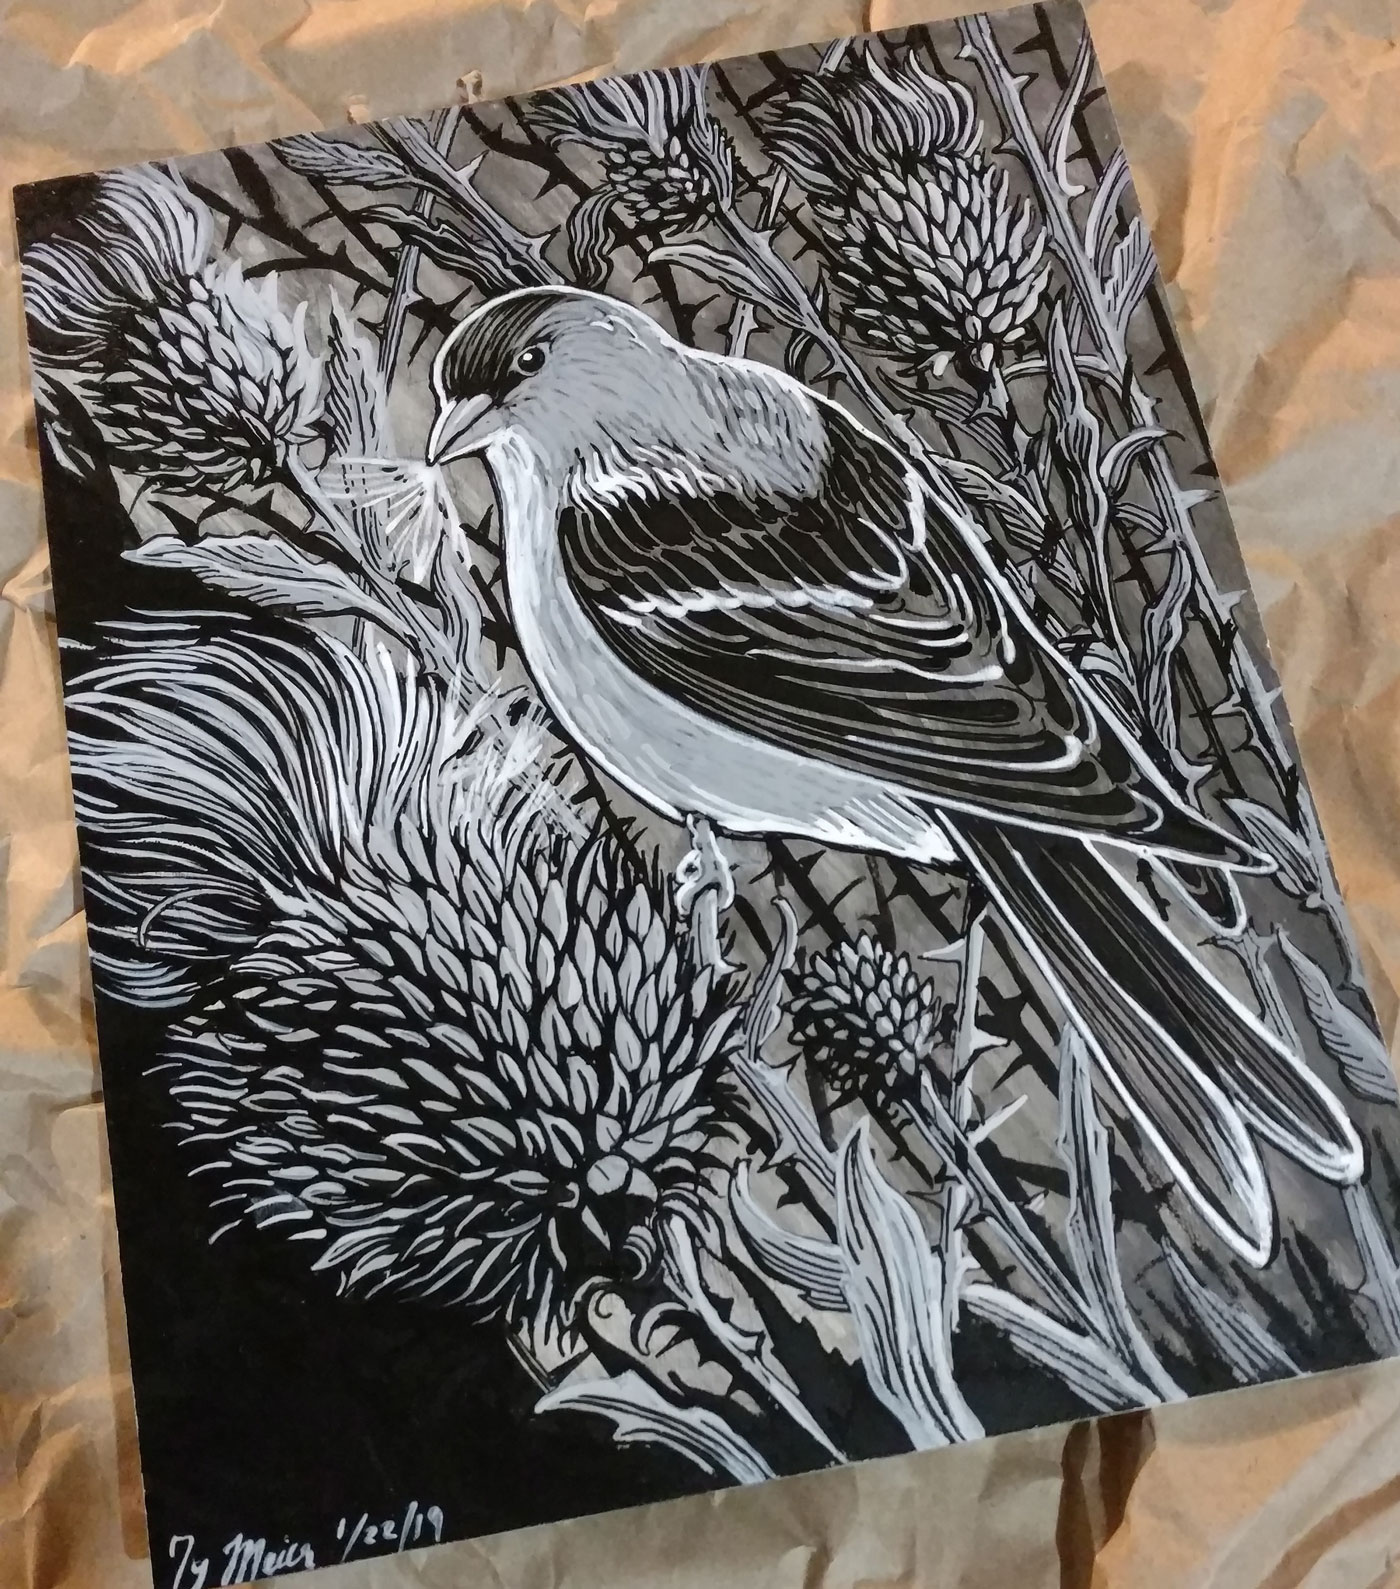 This started as a pencil drawing on an artboard, then I washed it grey, then quilled in the lines with india ink, and lastly attacked it with grey and white brushes. It's got a lot more brushwork then usual. When does a drawing stop being a drawing and start being a painting?